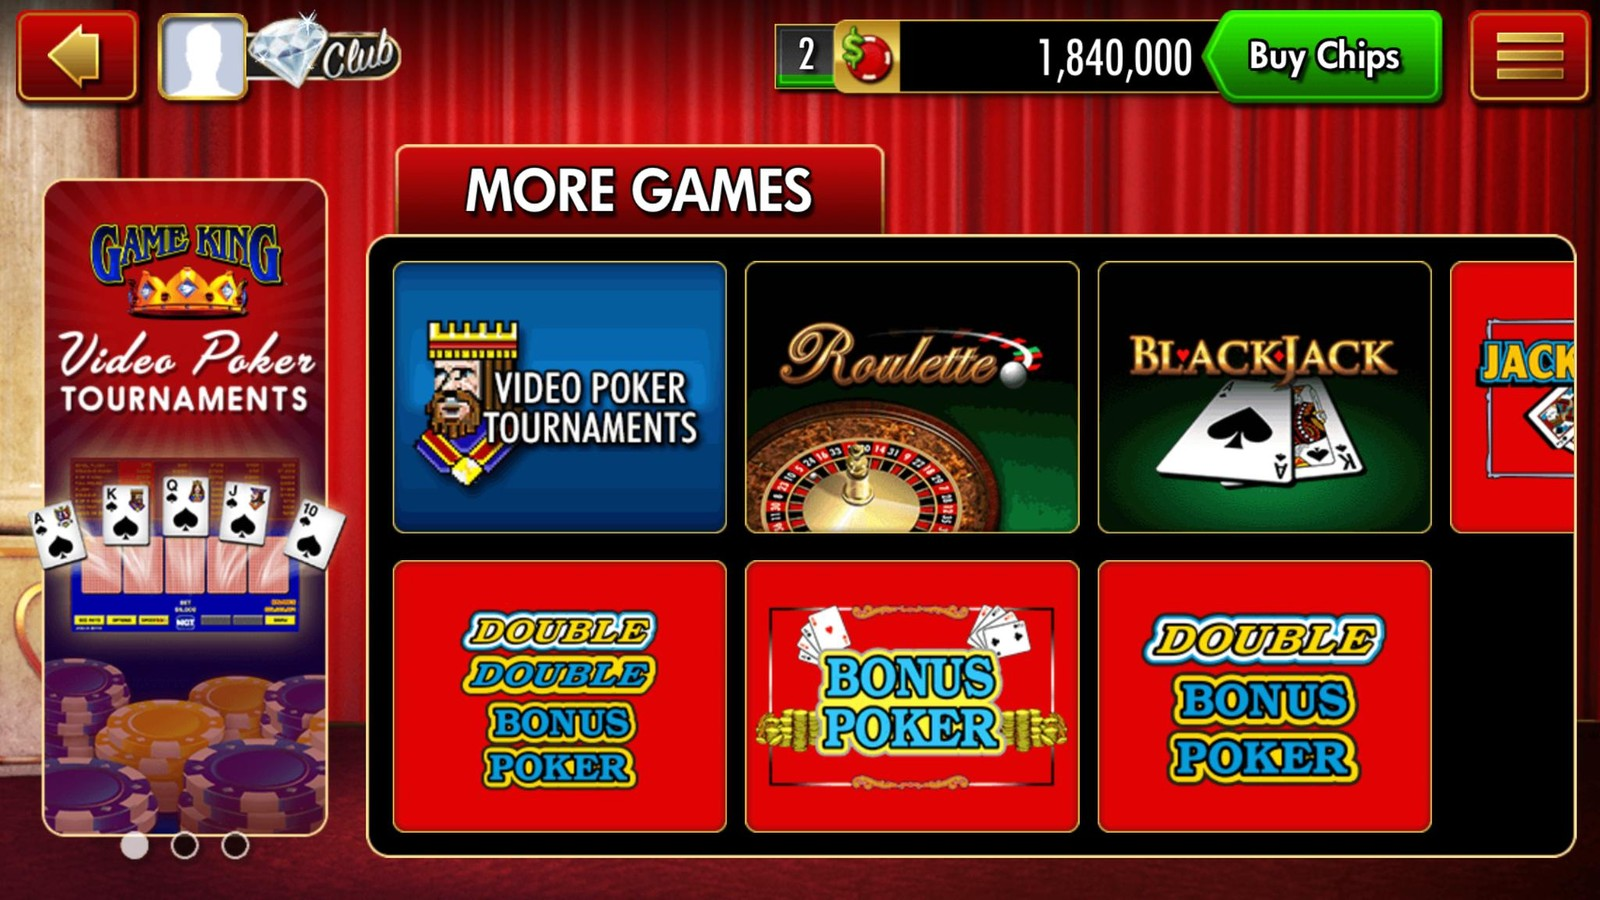 Does Double Down Casino Pay Real Money